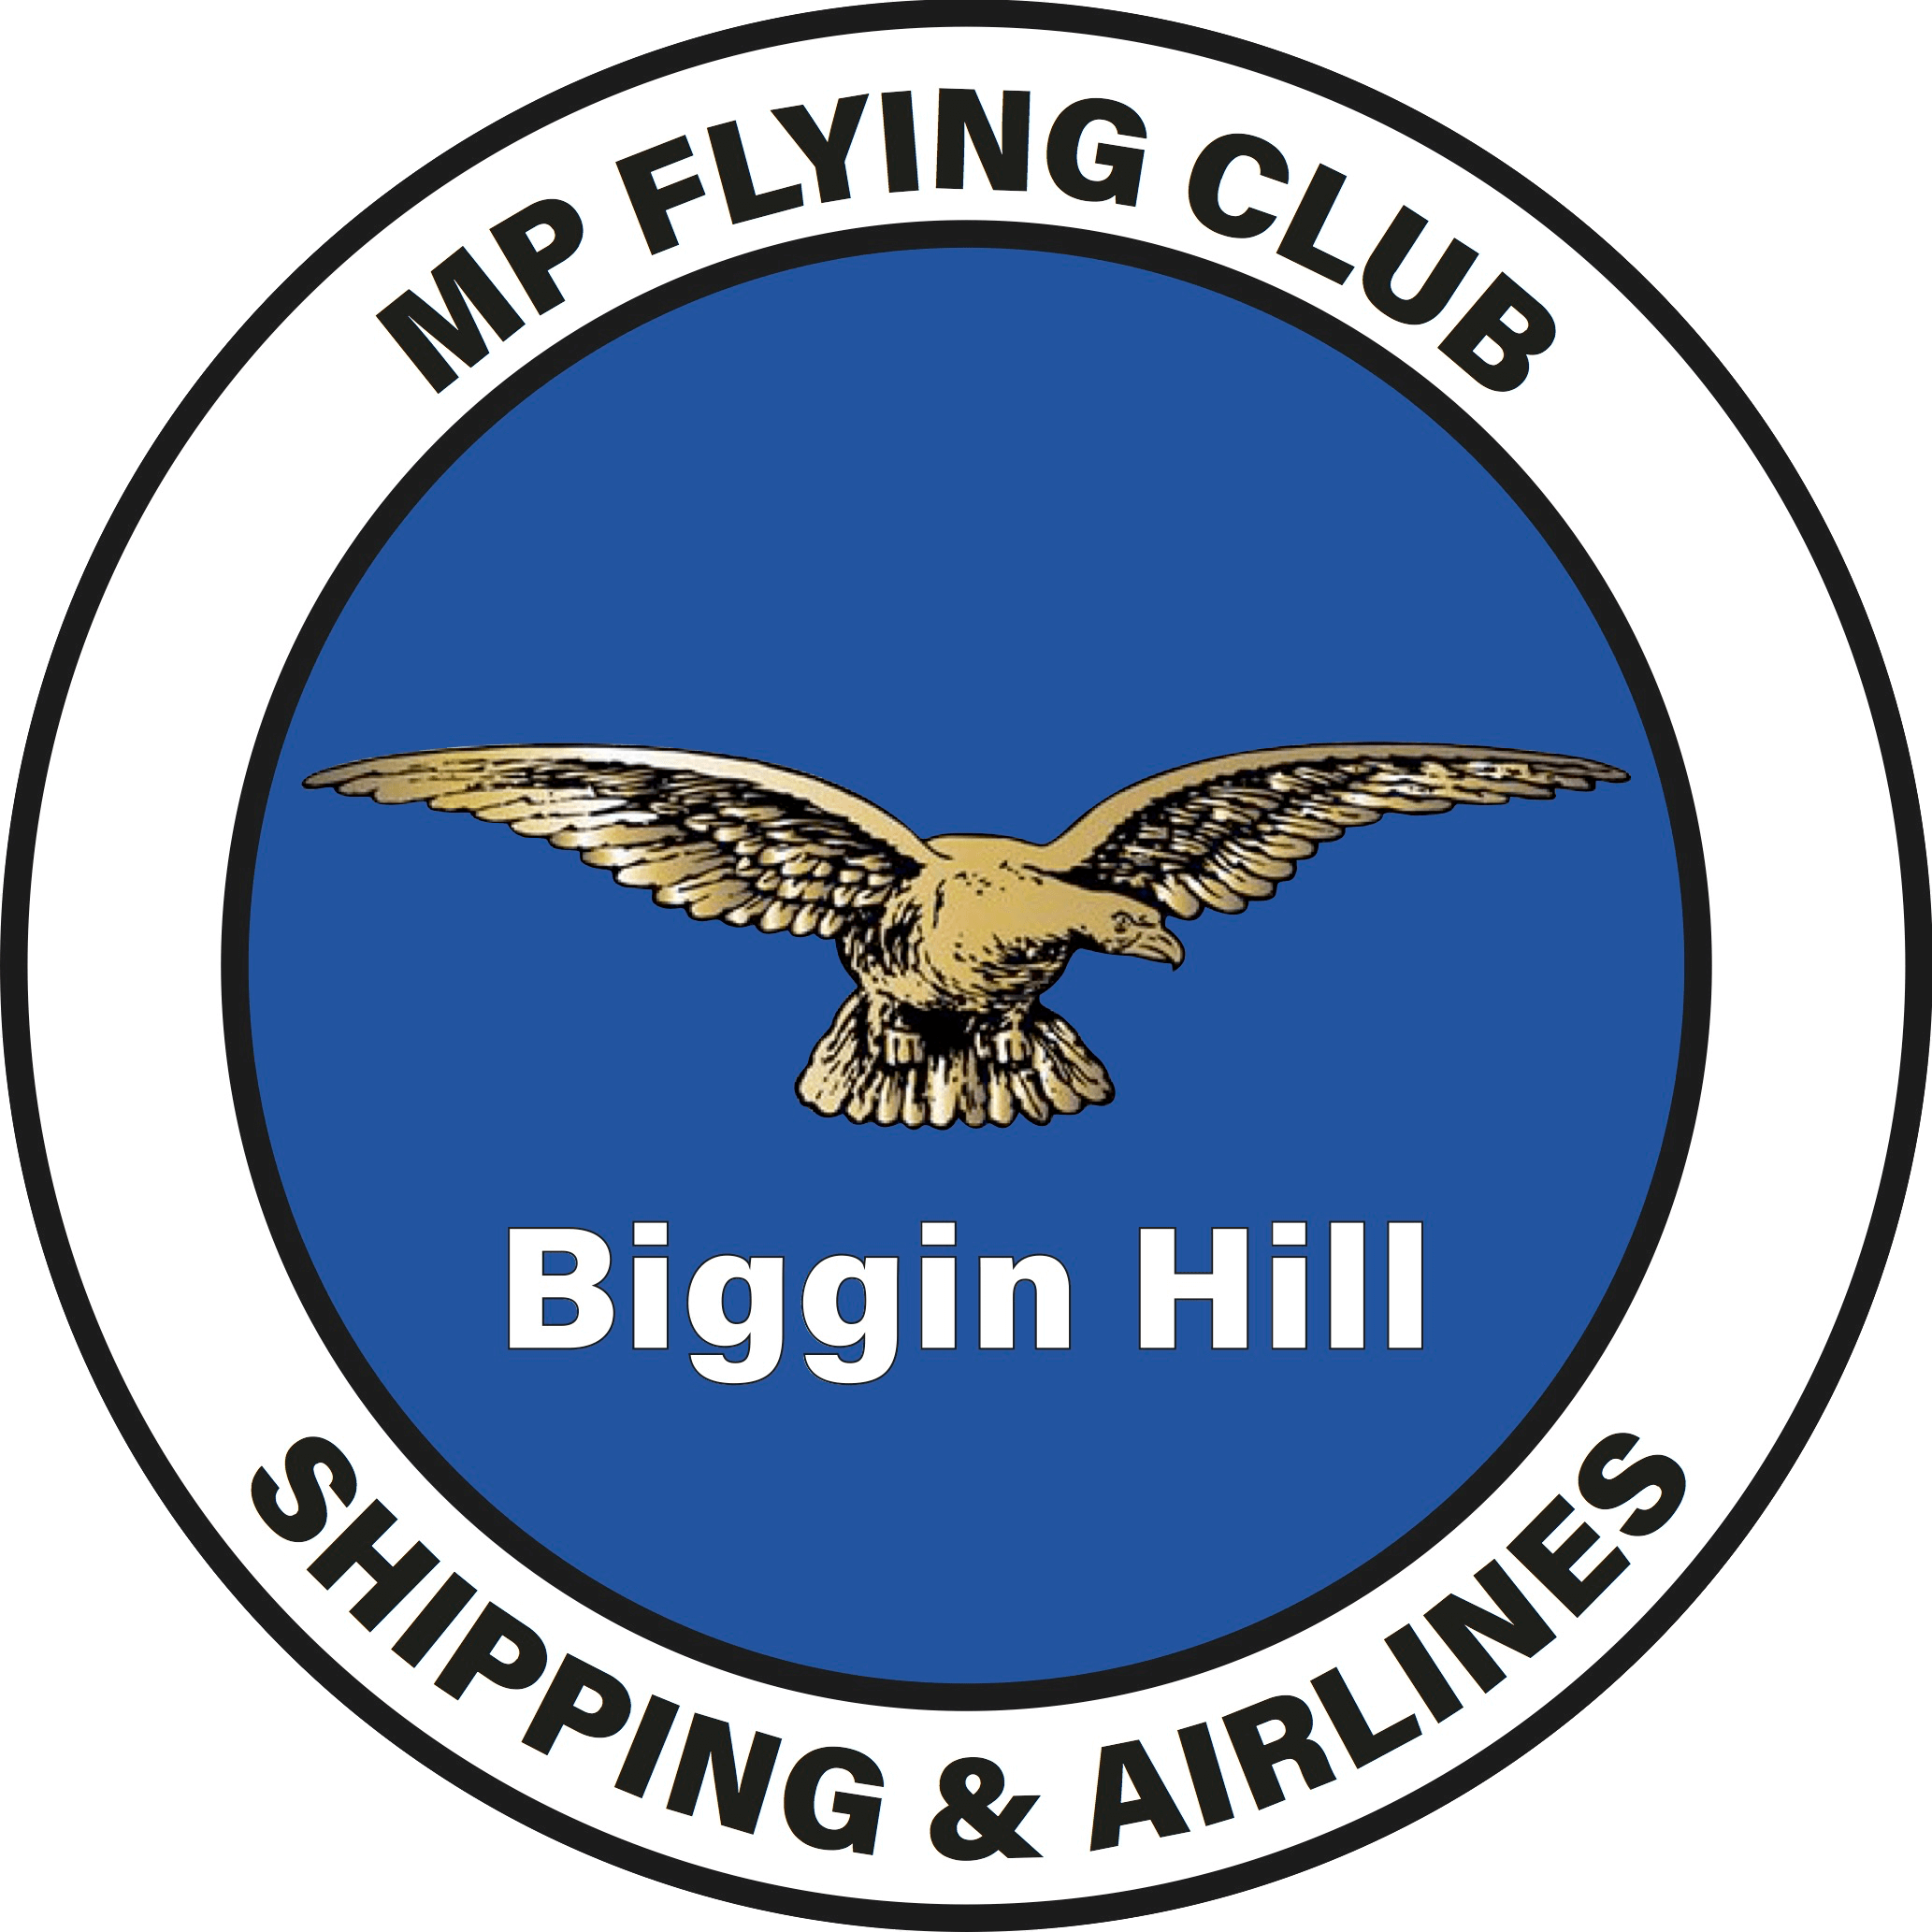 MP Flying Club Website